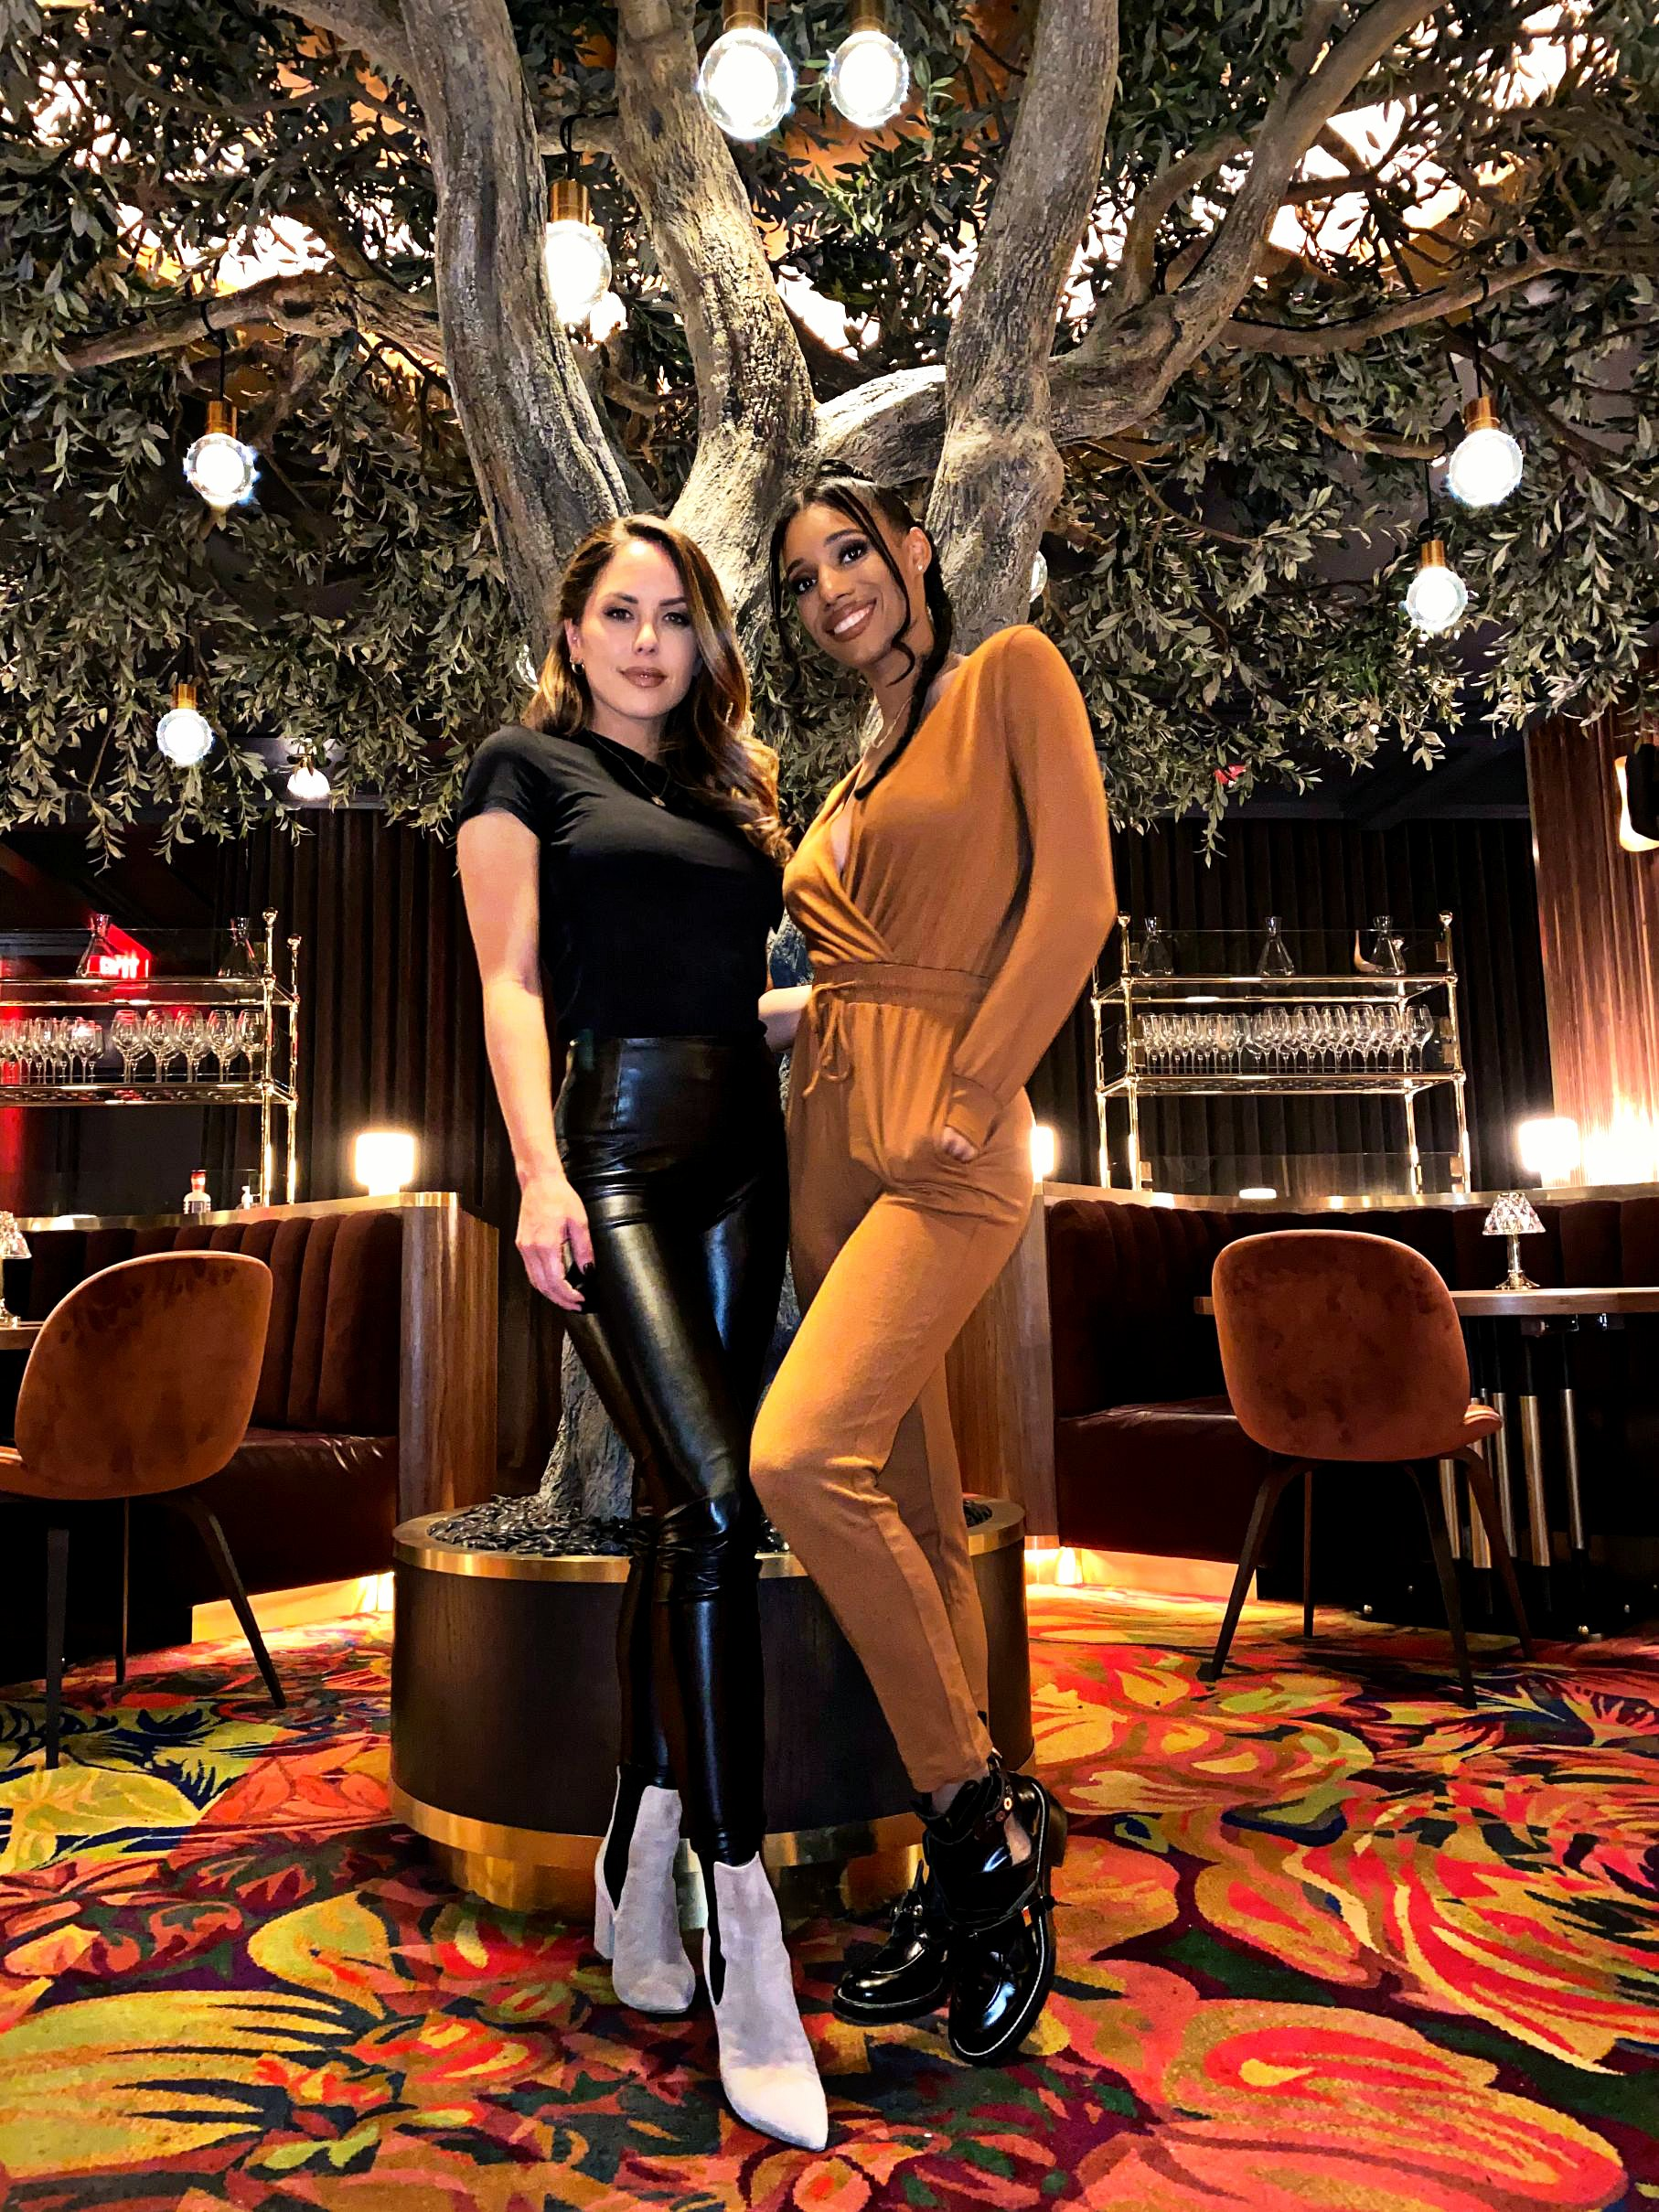 Two women stand in front of a tree in a dining room